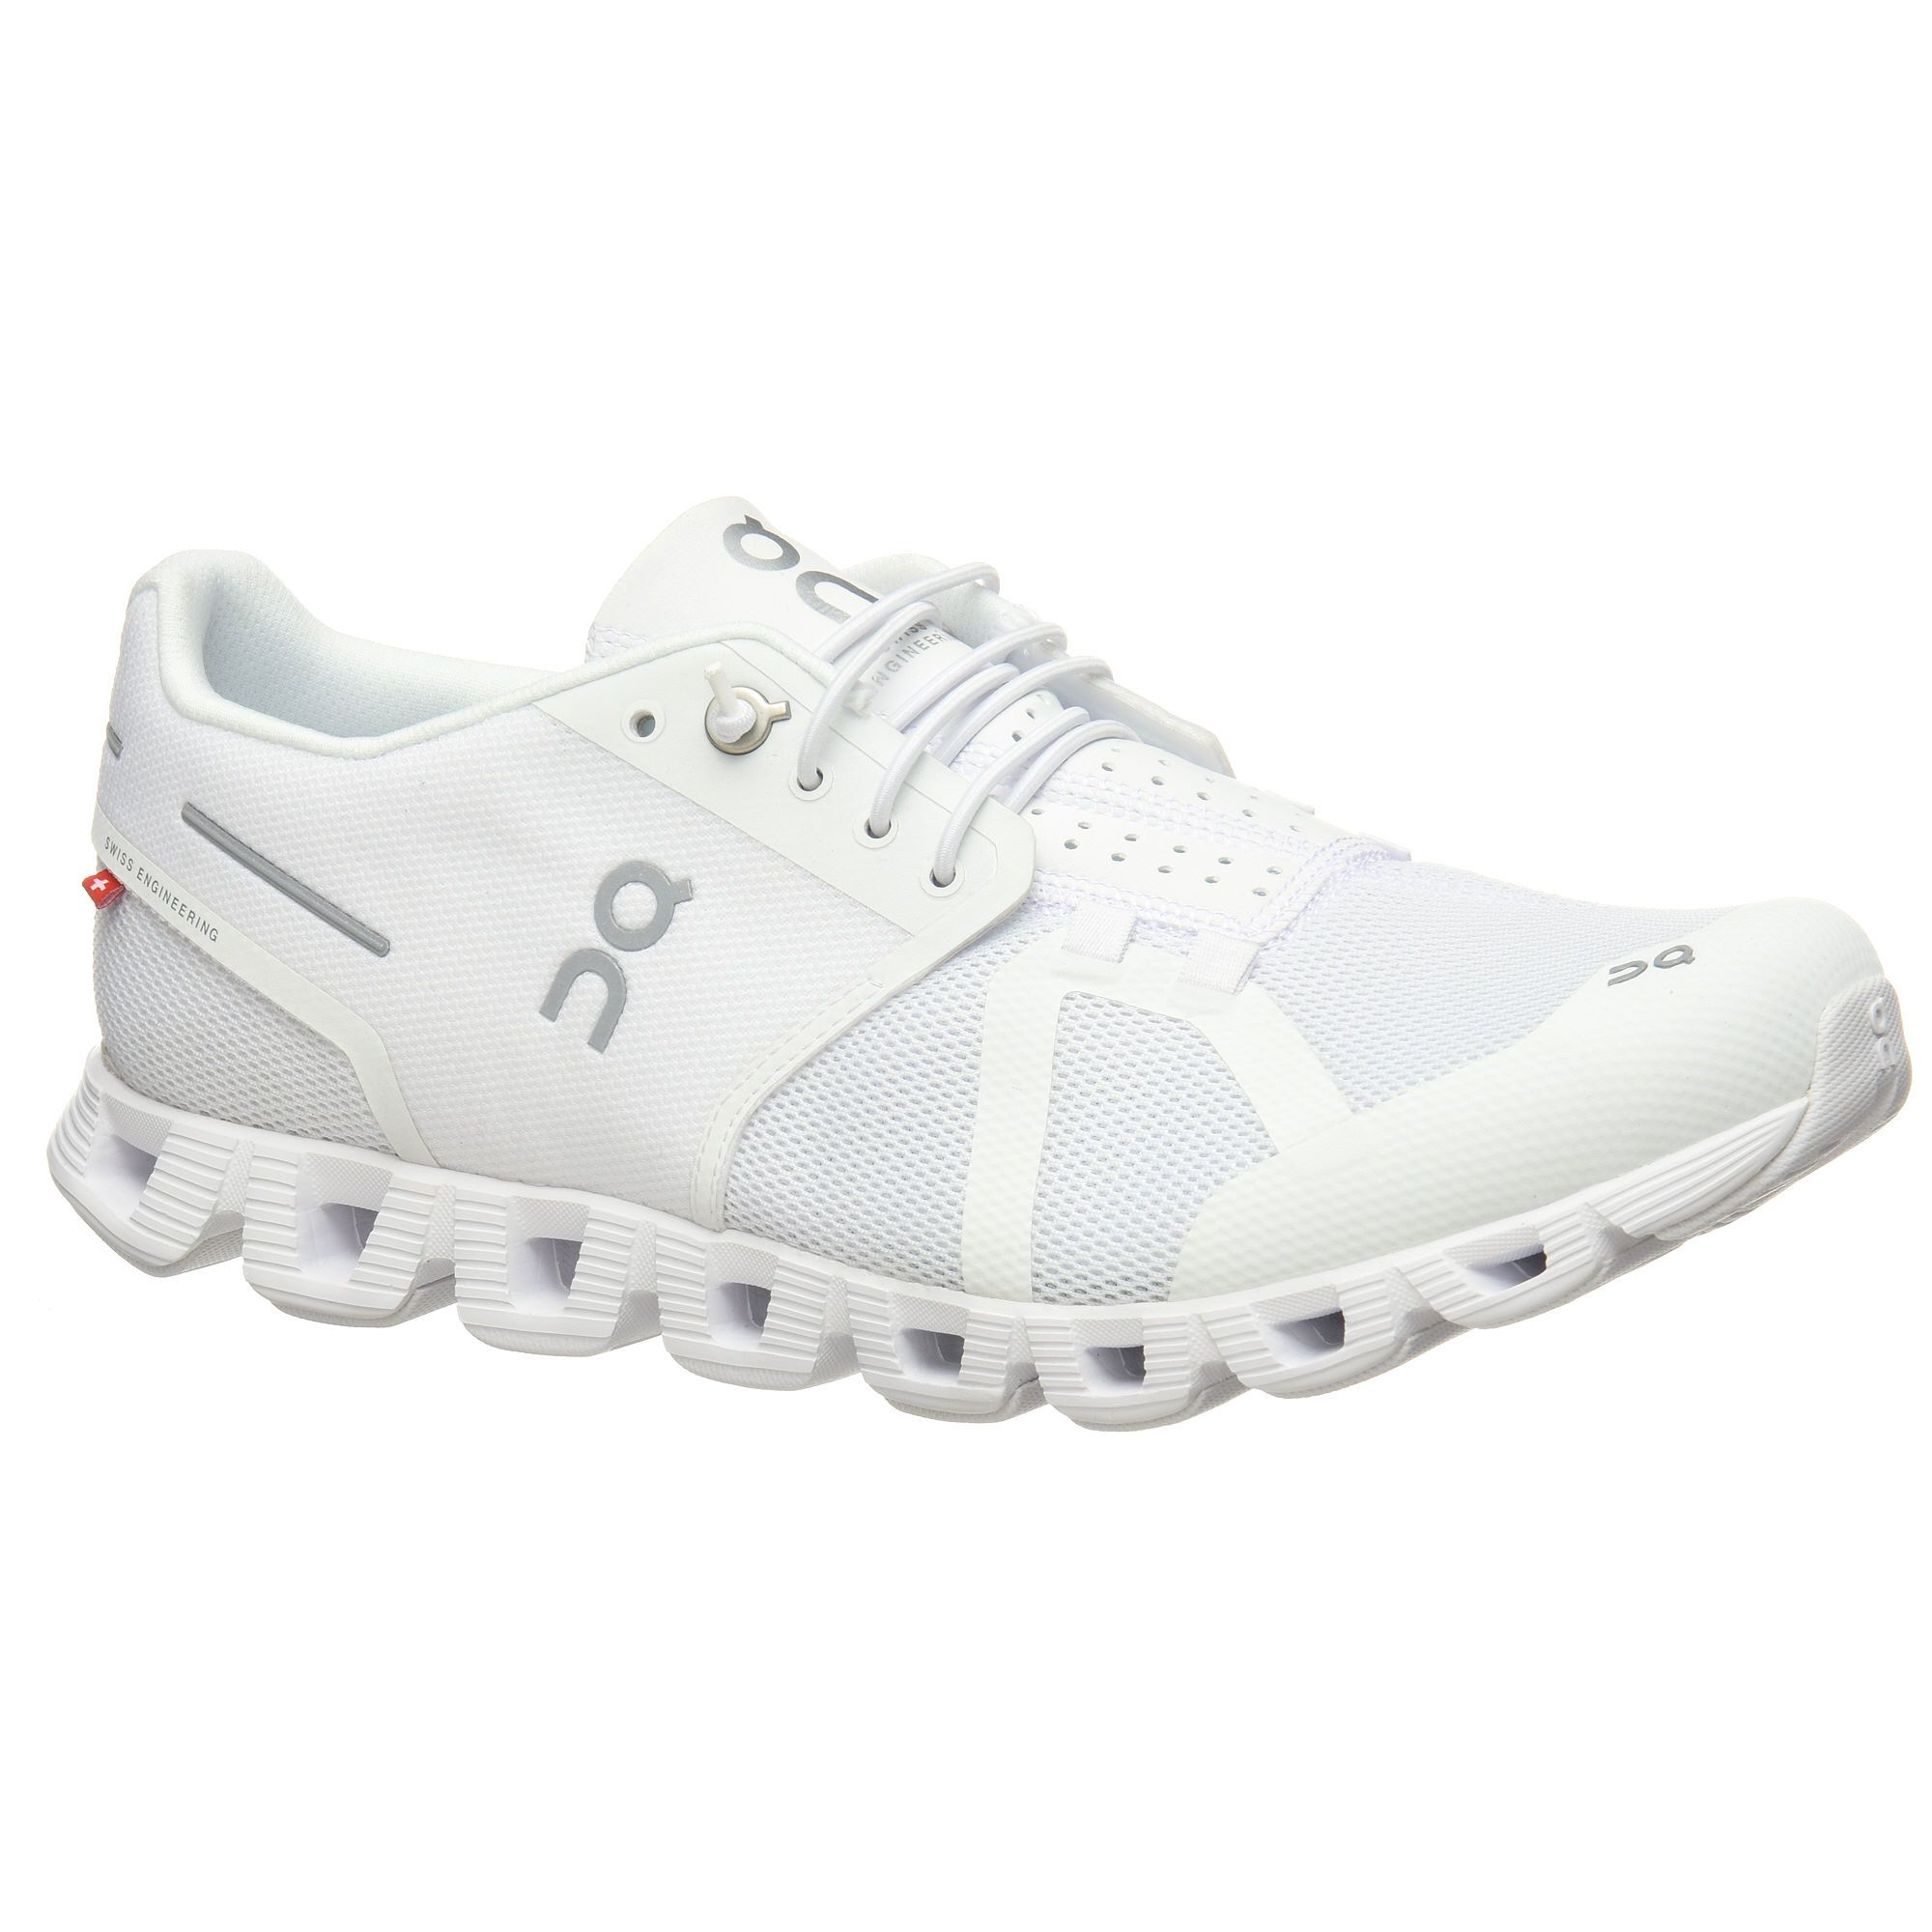 5 of the best all-white running shoes